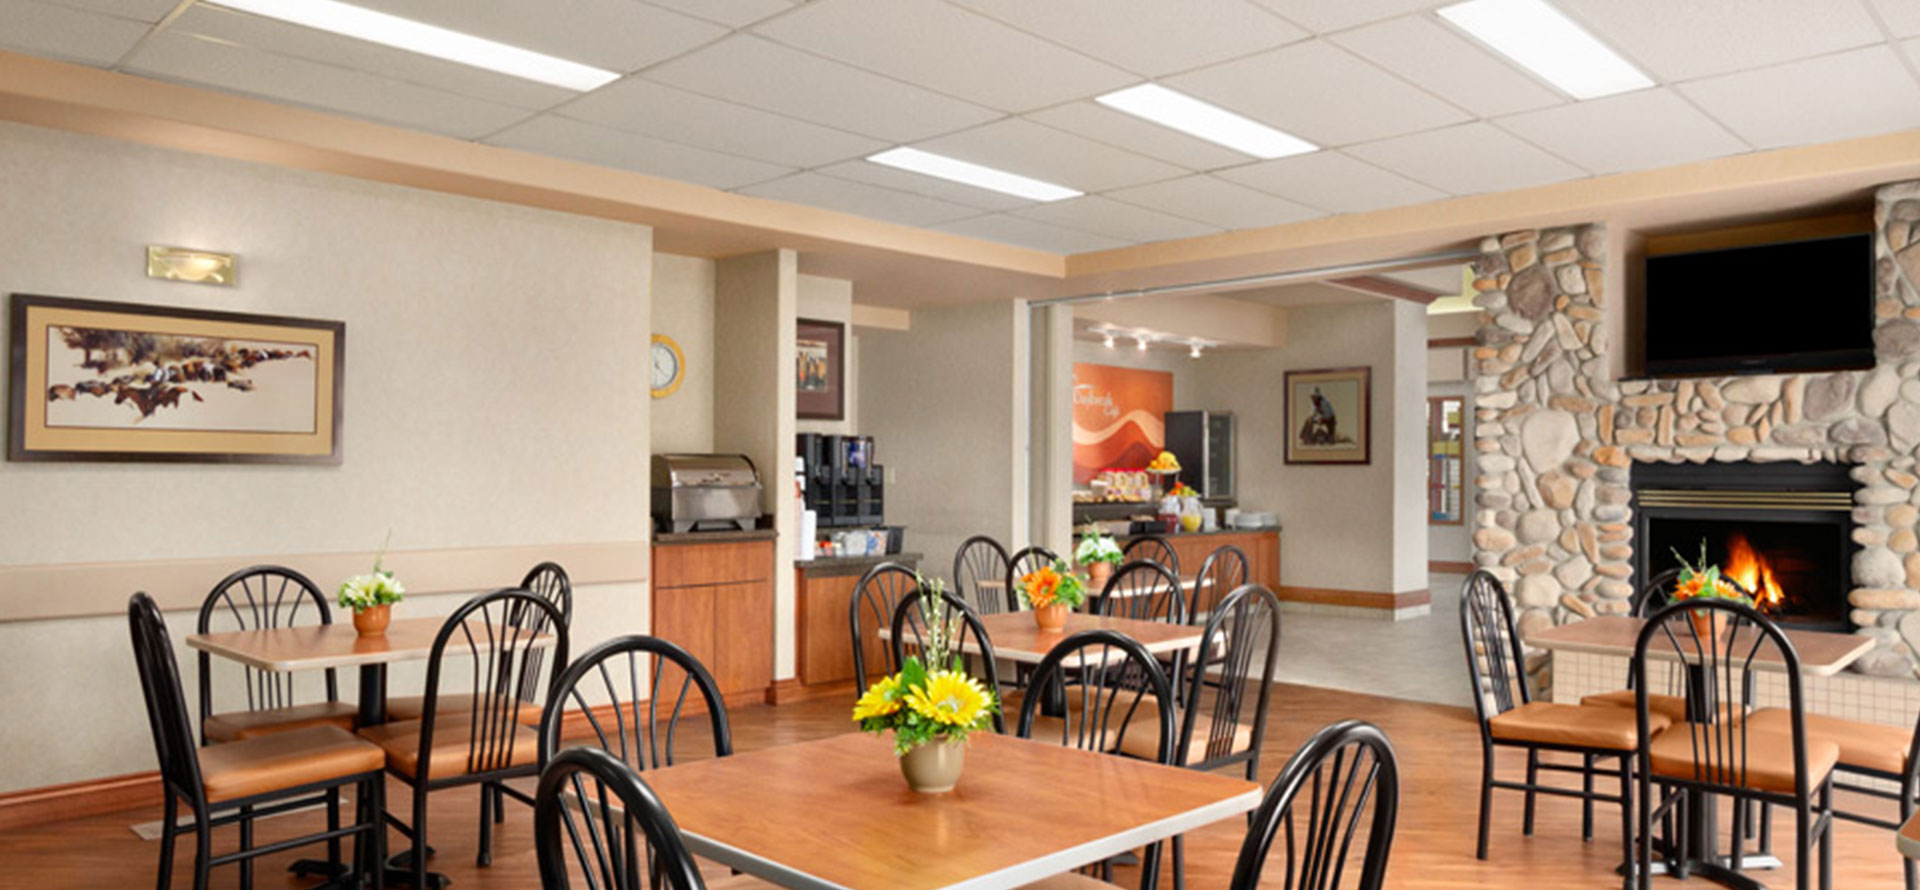 Large view of a bright breakfast room with stone fireplace, tables, chairs and fresh flowers at Days Inn Red Deer, Alberta.